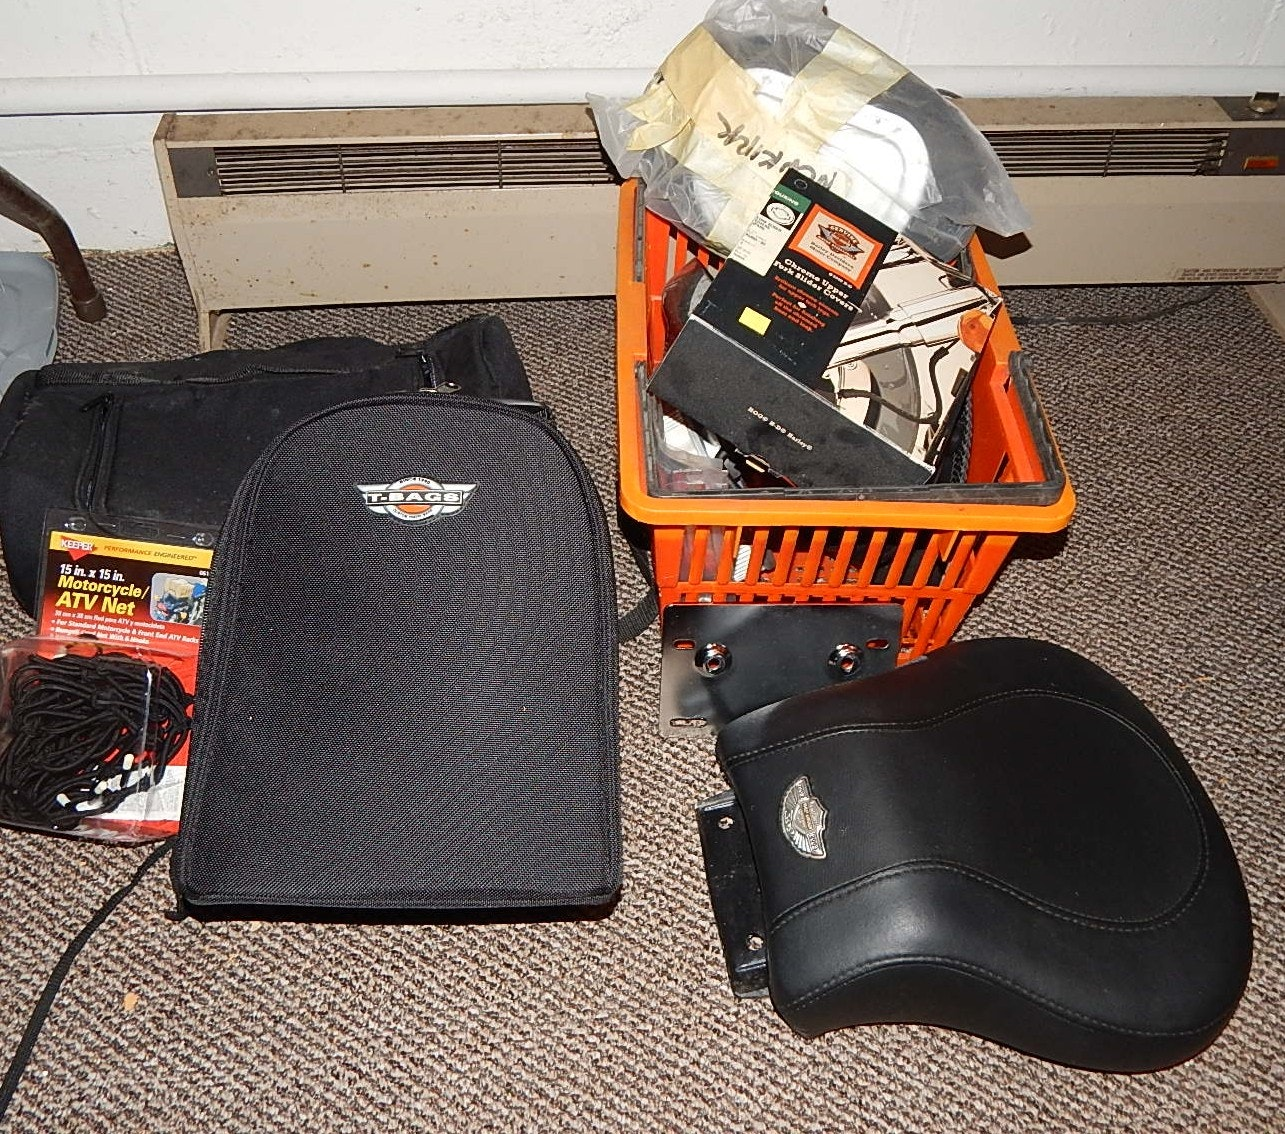 Motorcycle Parts and Accessories with Harley Davidson